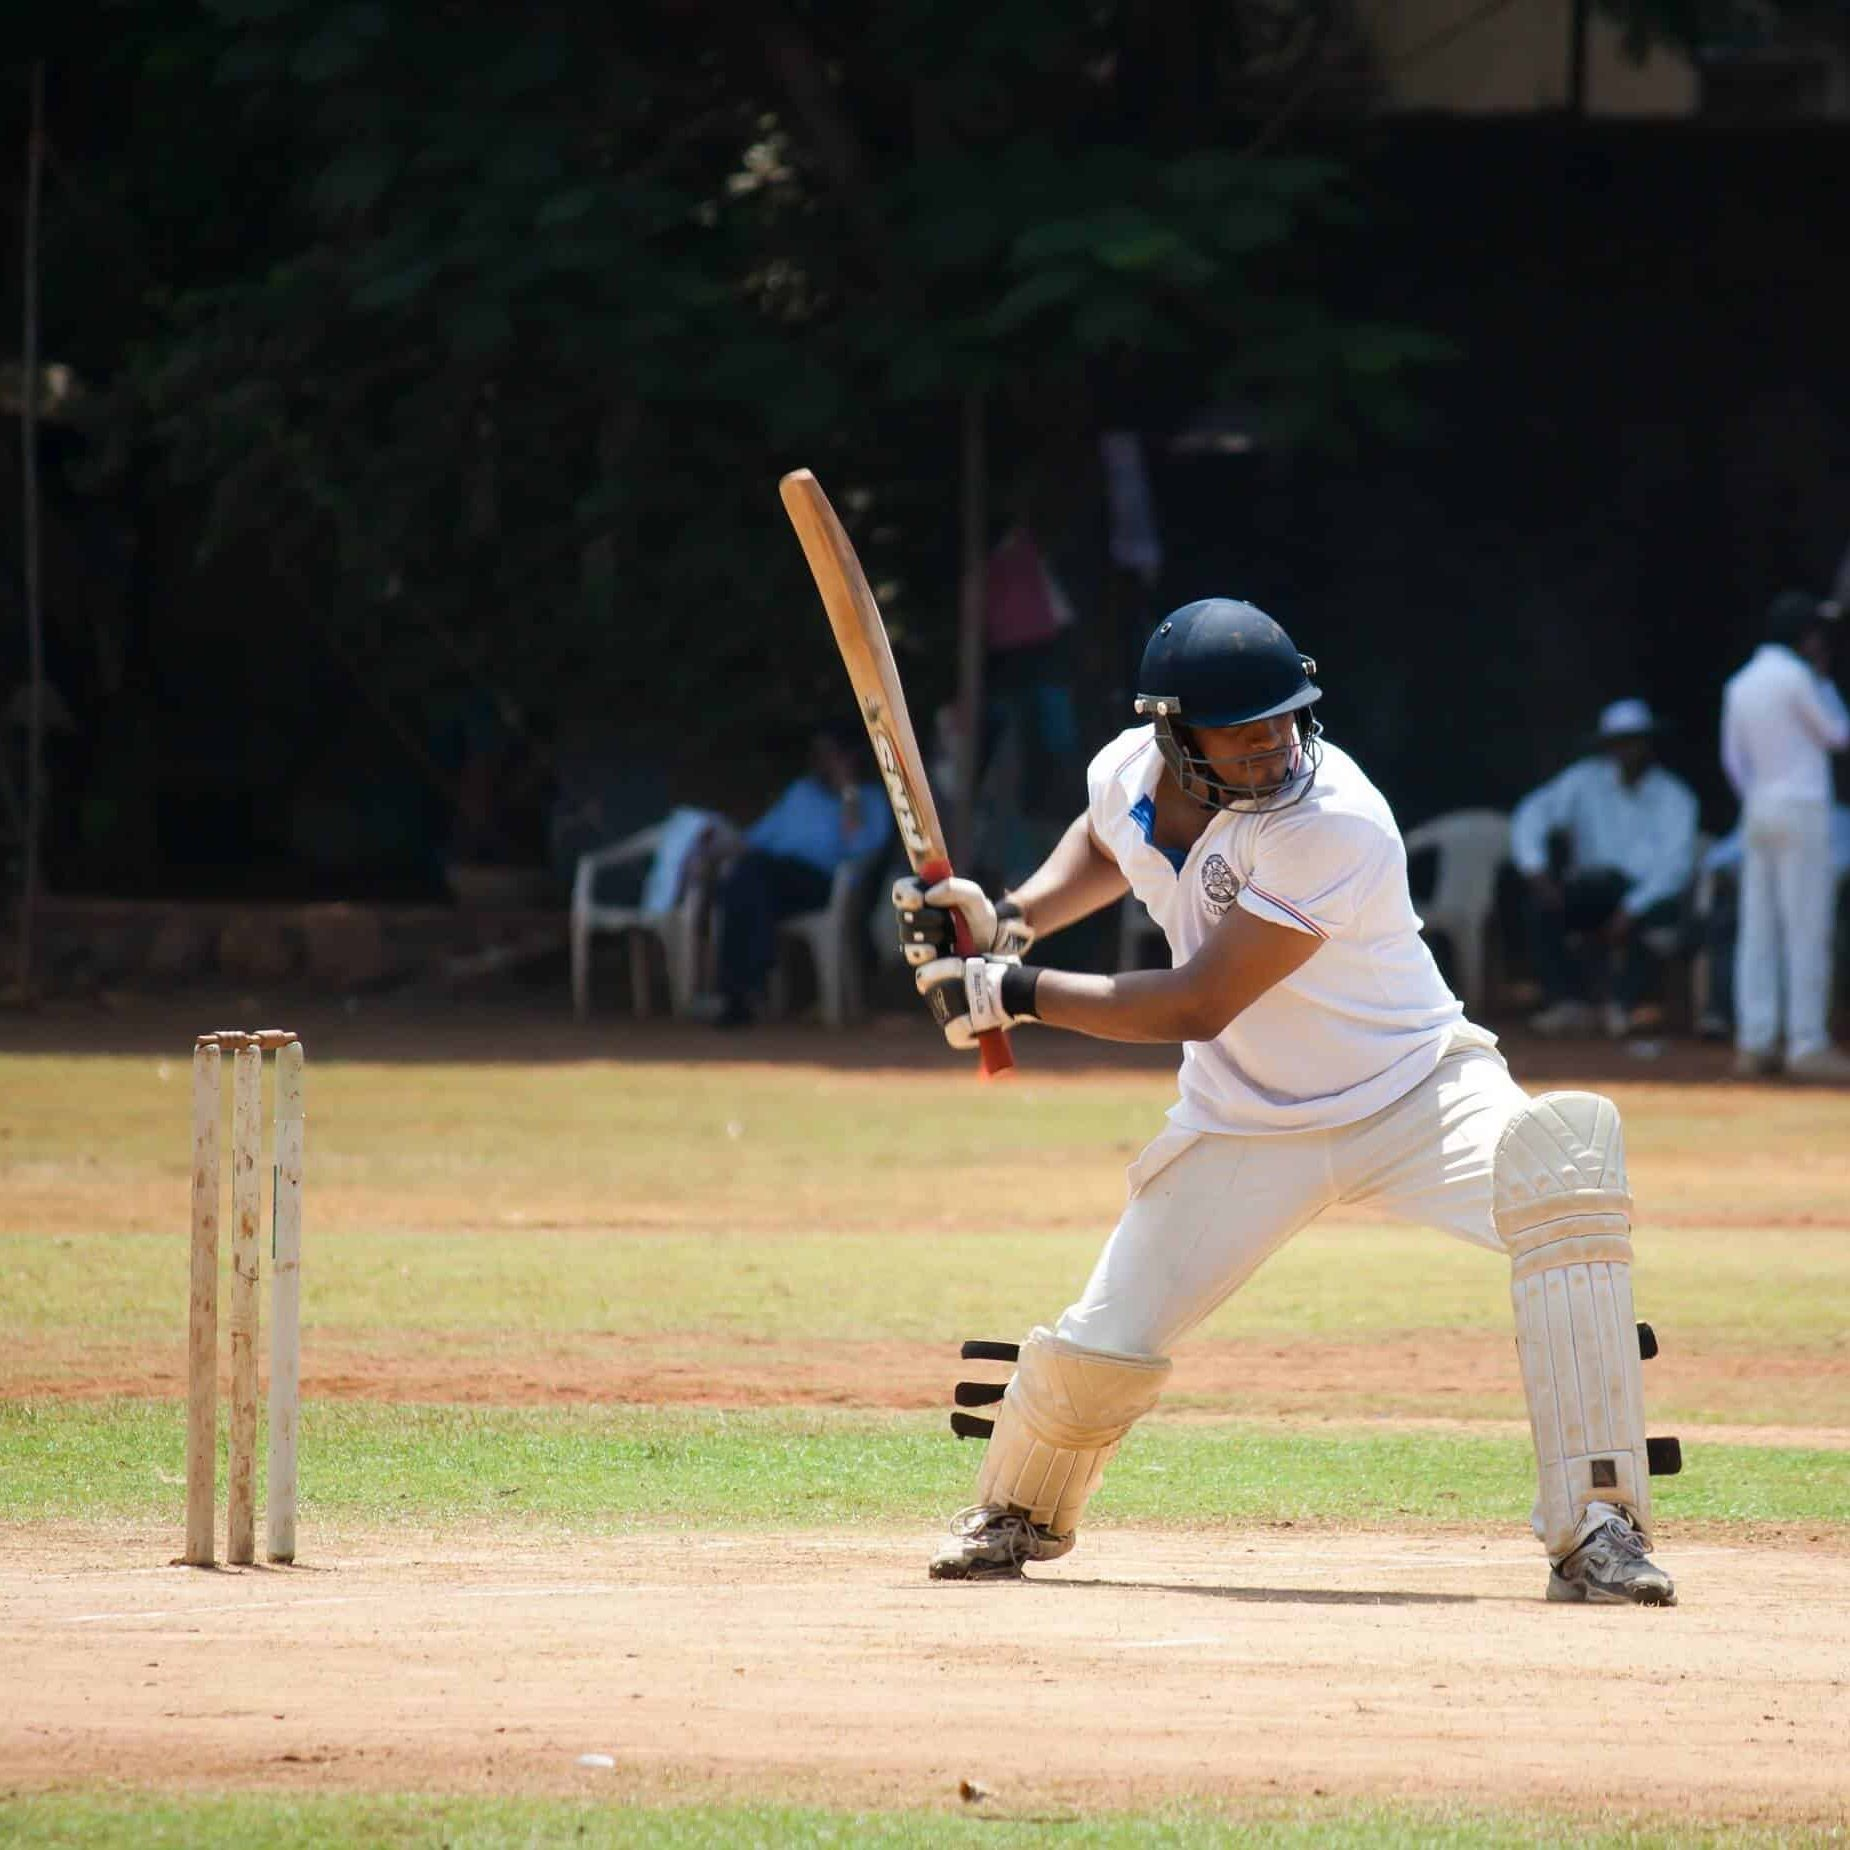 A Cricket Player in position